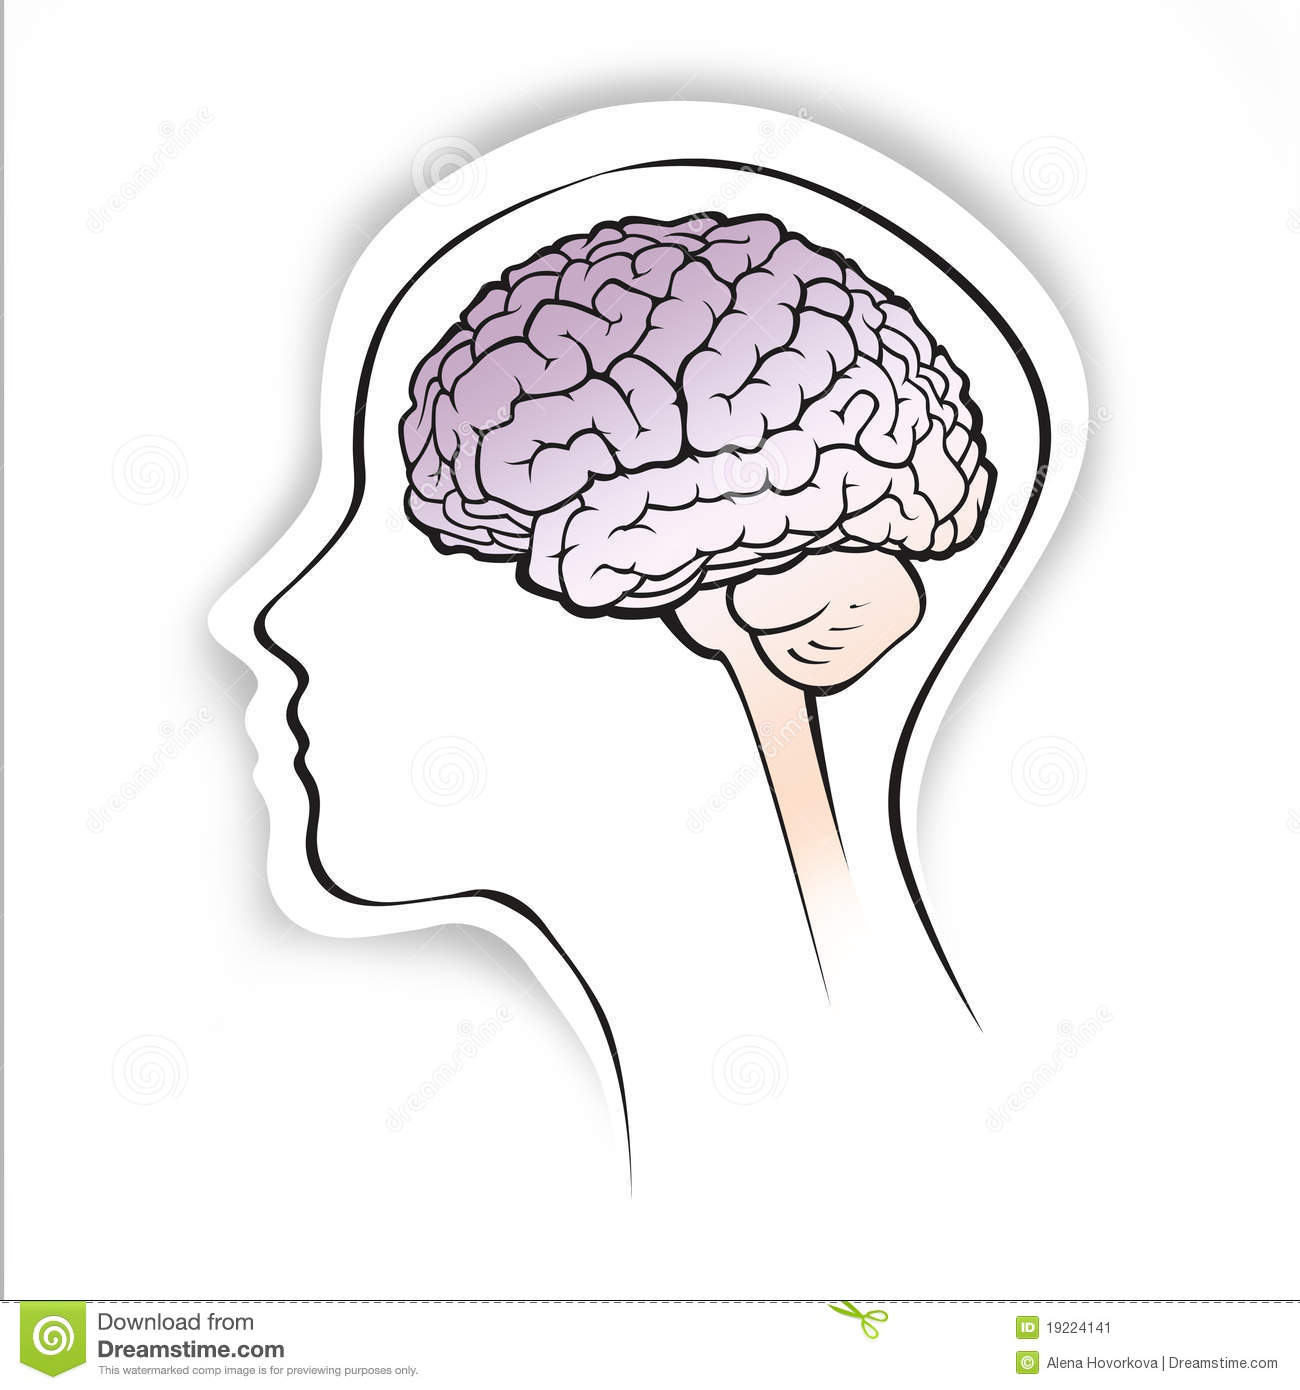 basic diagram human brain addressable smoke detector wiring within a simple head silhouette stock